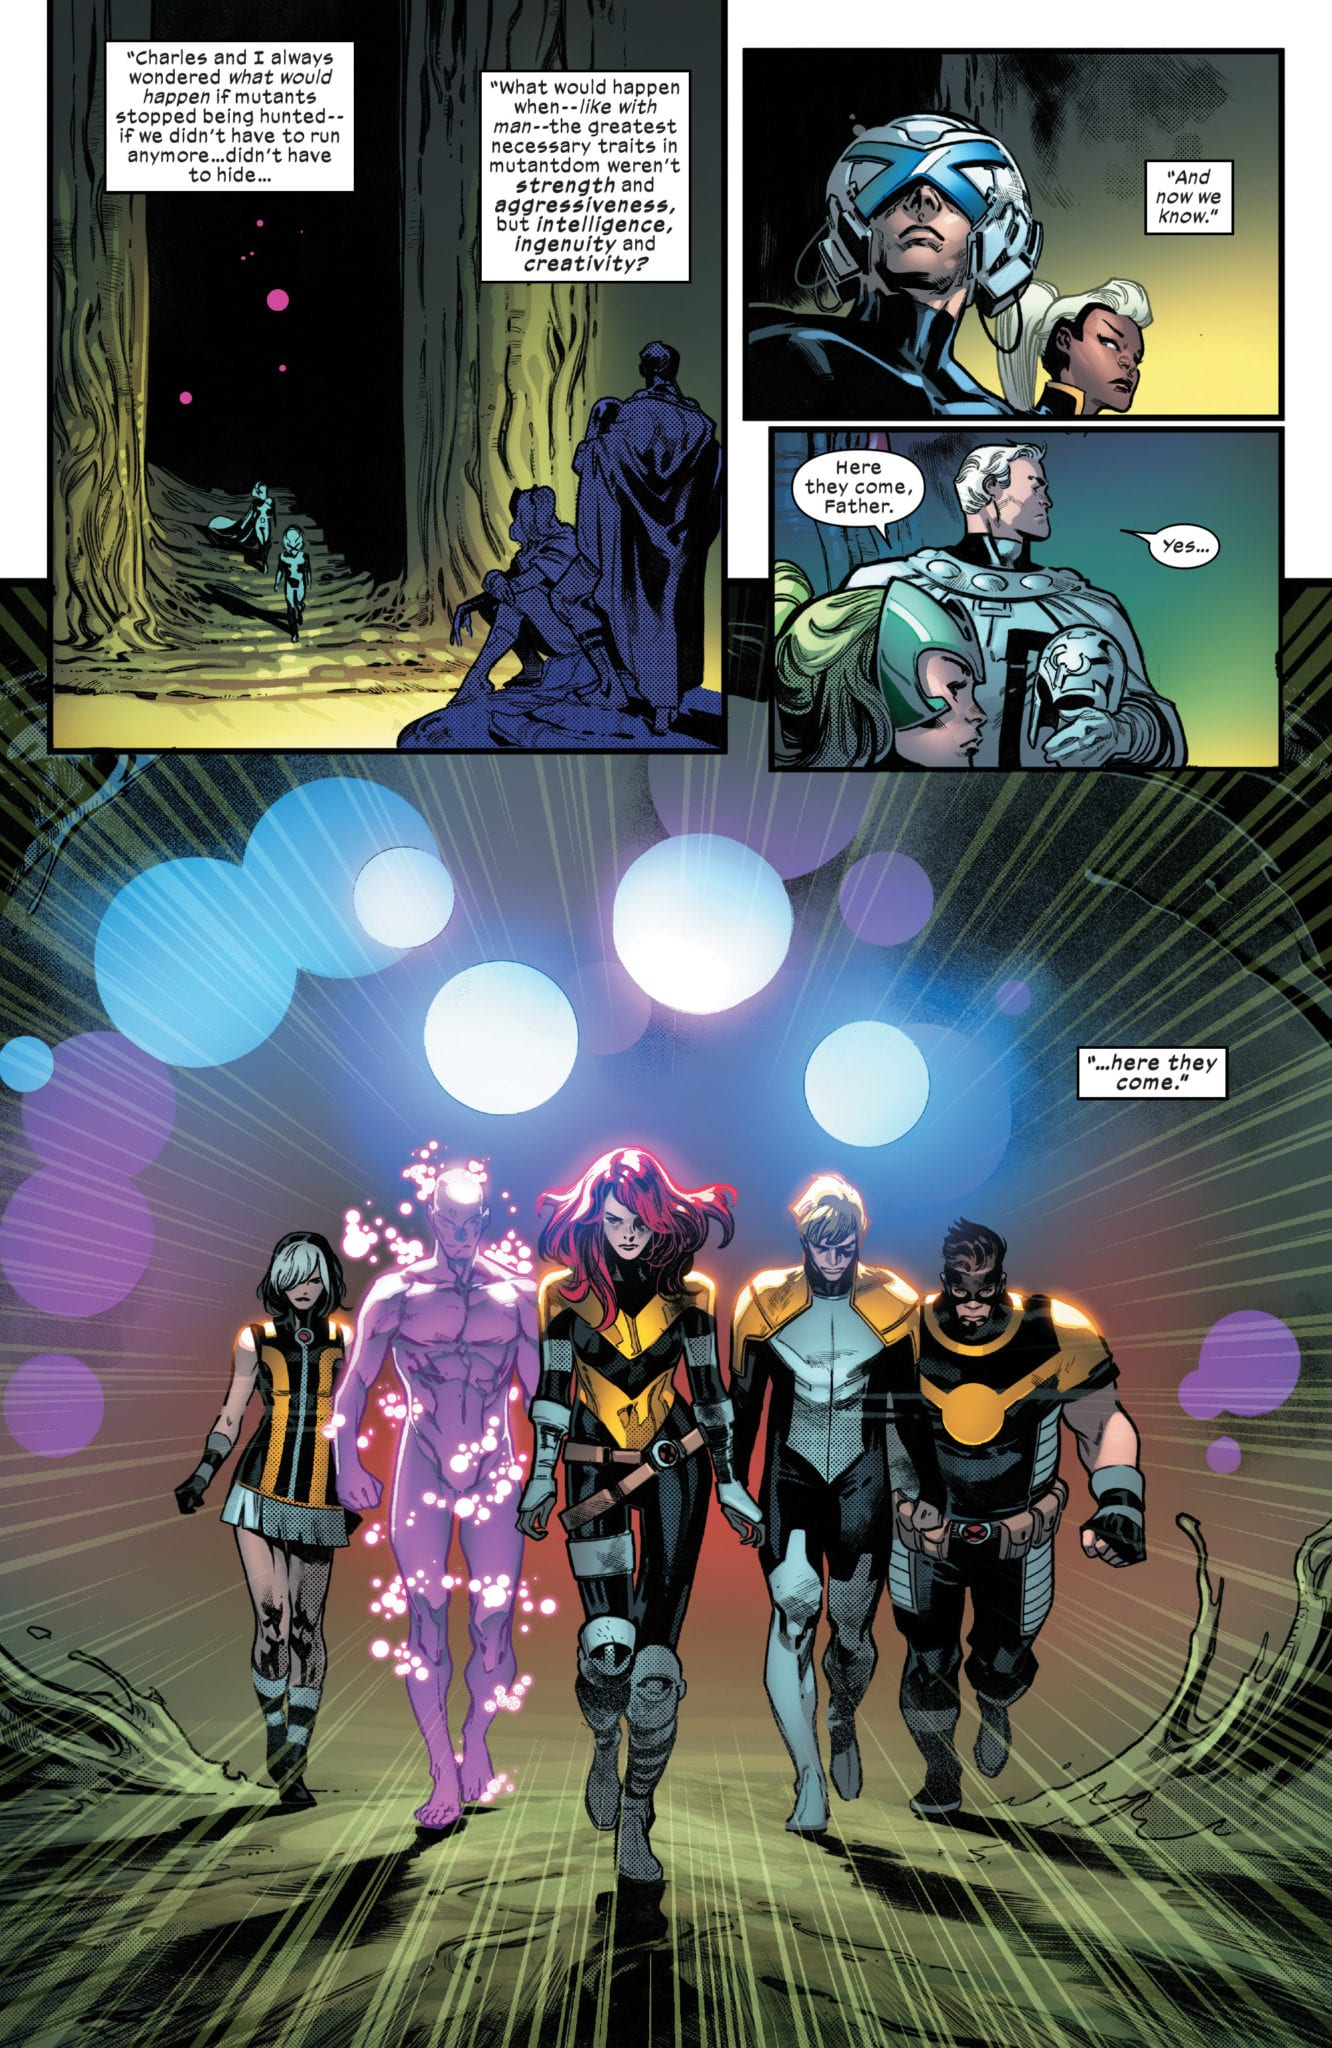 HOUSE OF X #5 - Get Ready For Your Mind To Be Blown 1